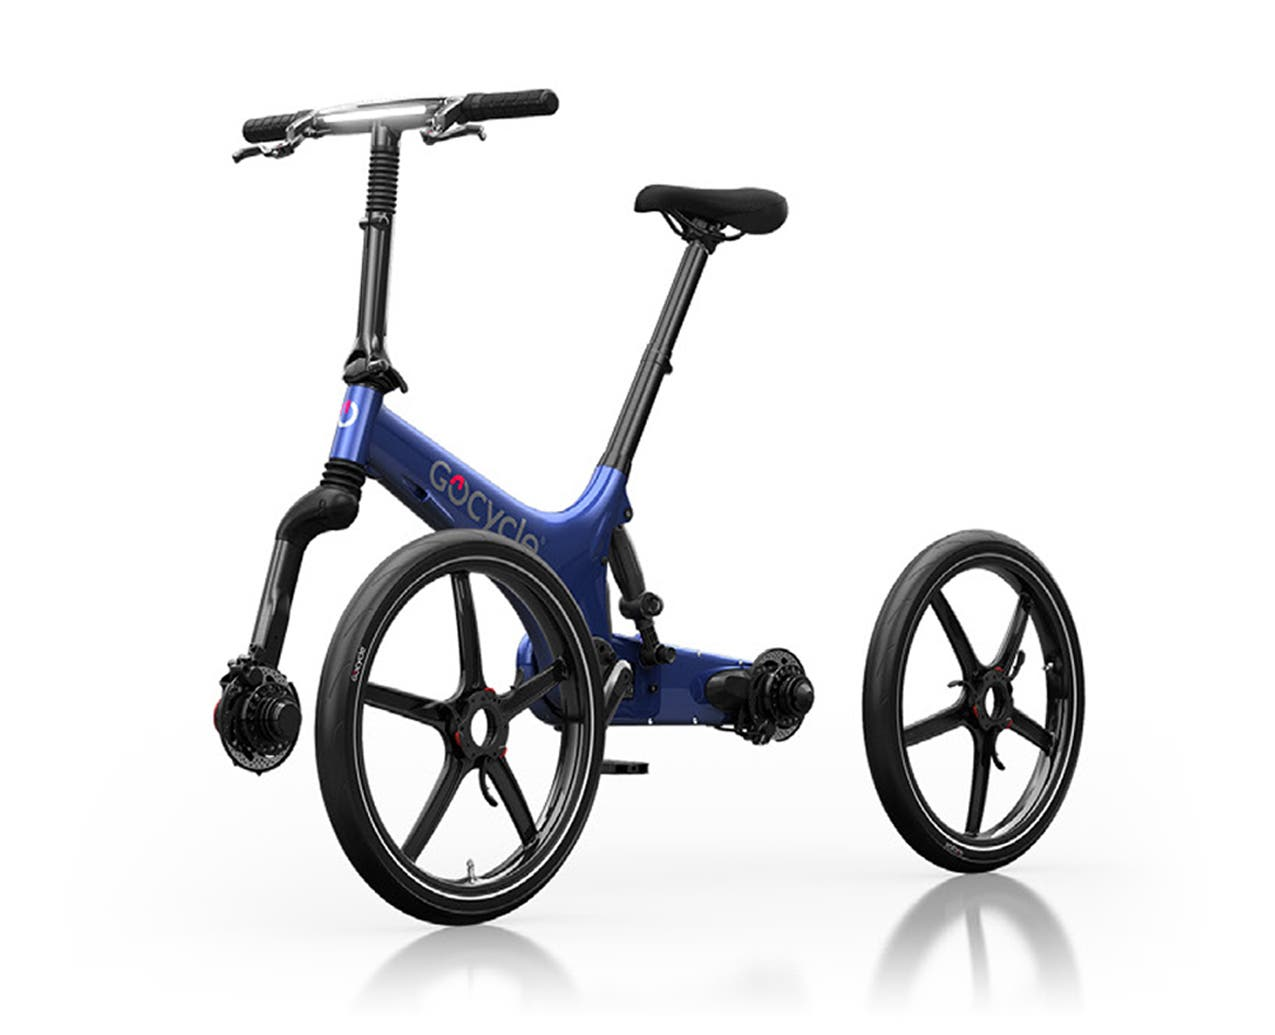 GoCycle GS, Folding E-Bike. Picture: https://gocycle.com/models/gocycle-gs